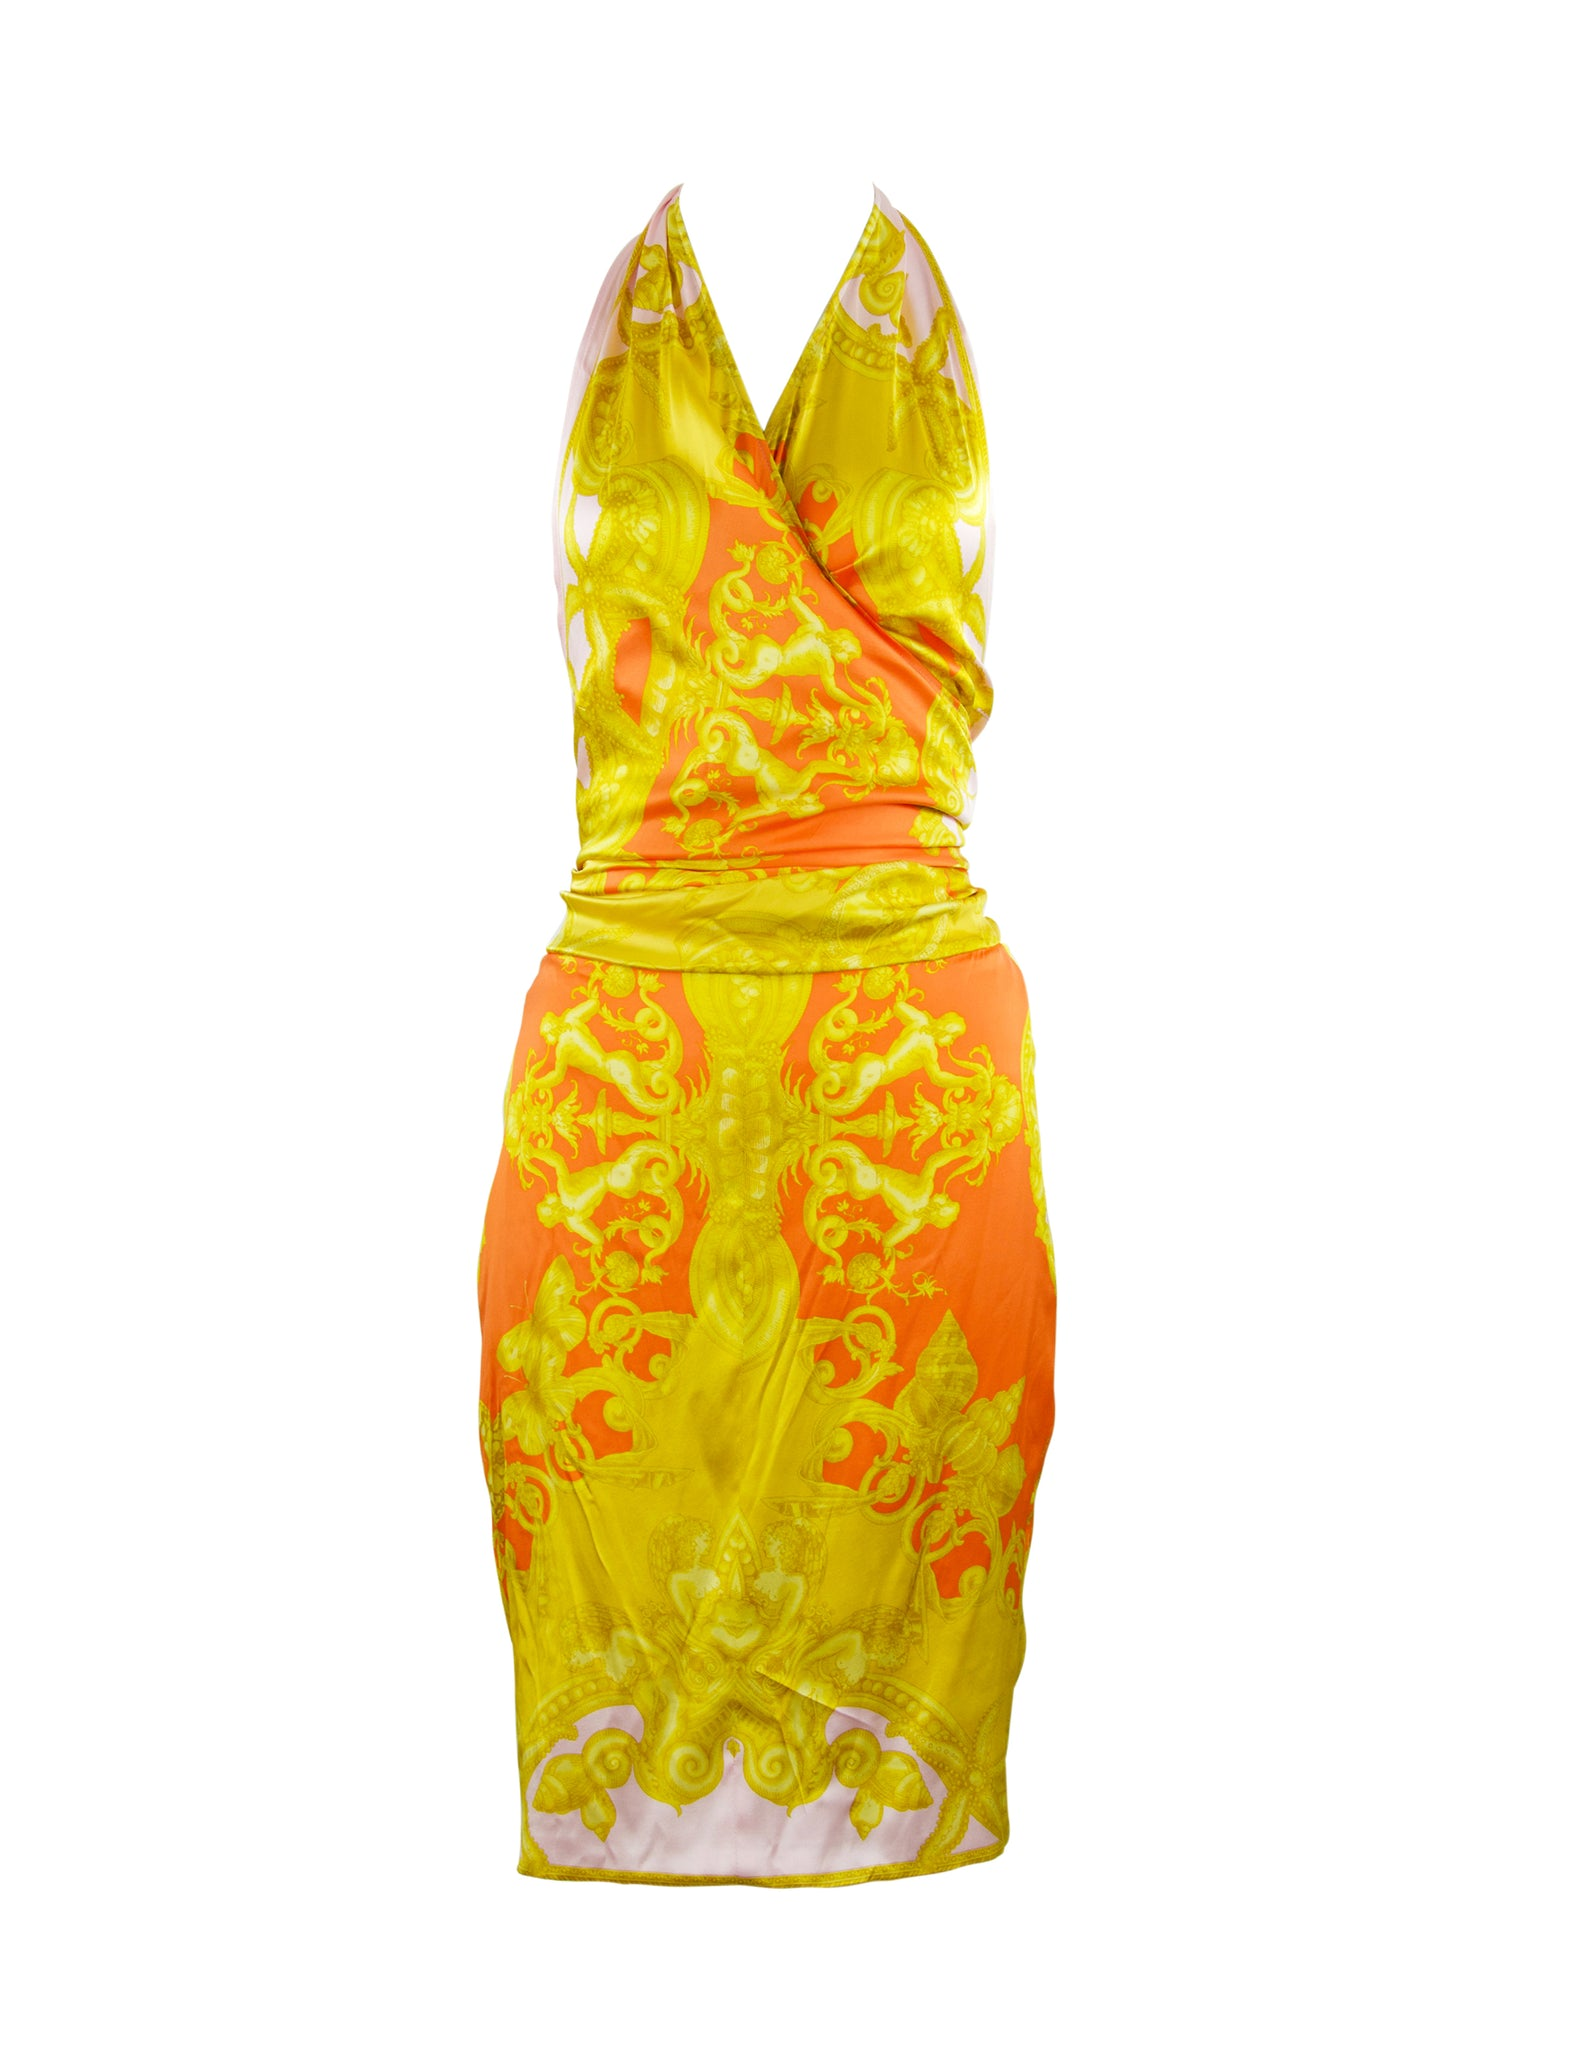 Versace Pink, Orange and Gold Silk Halter Dress - Size IT 42